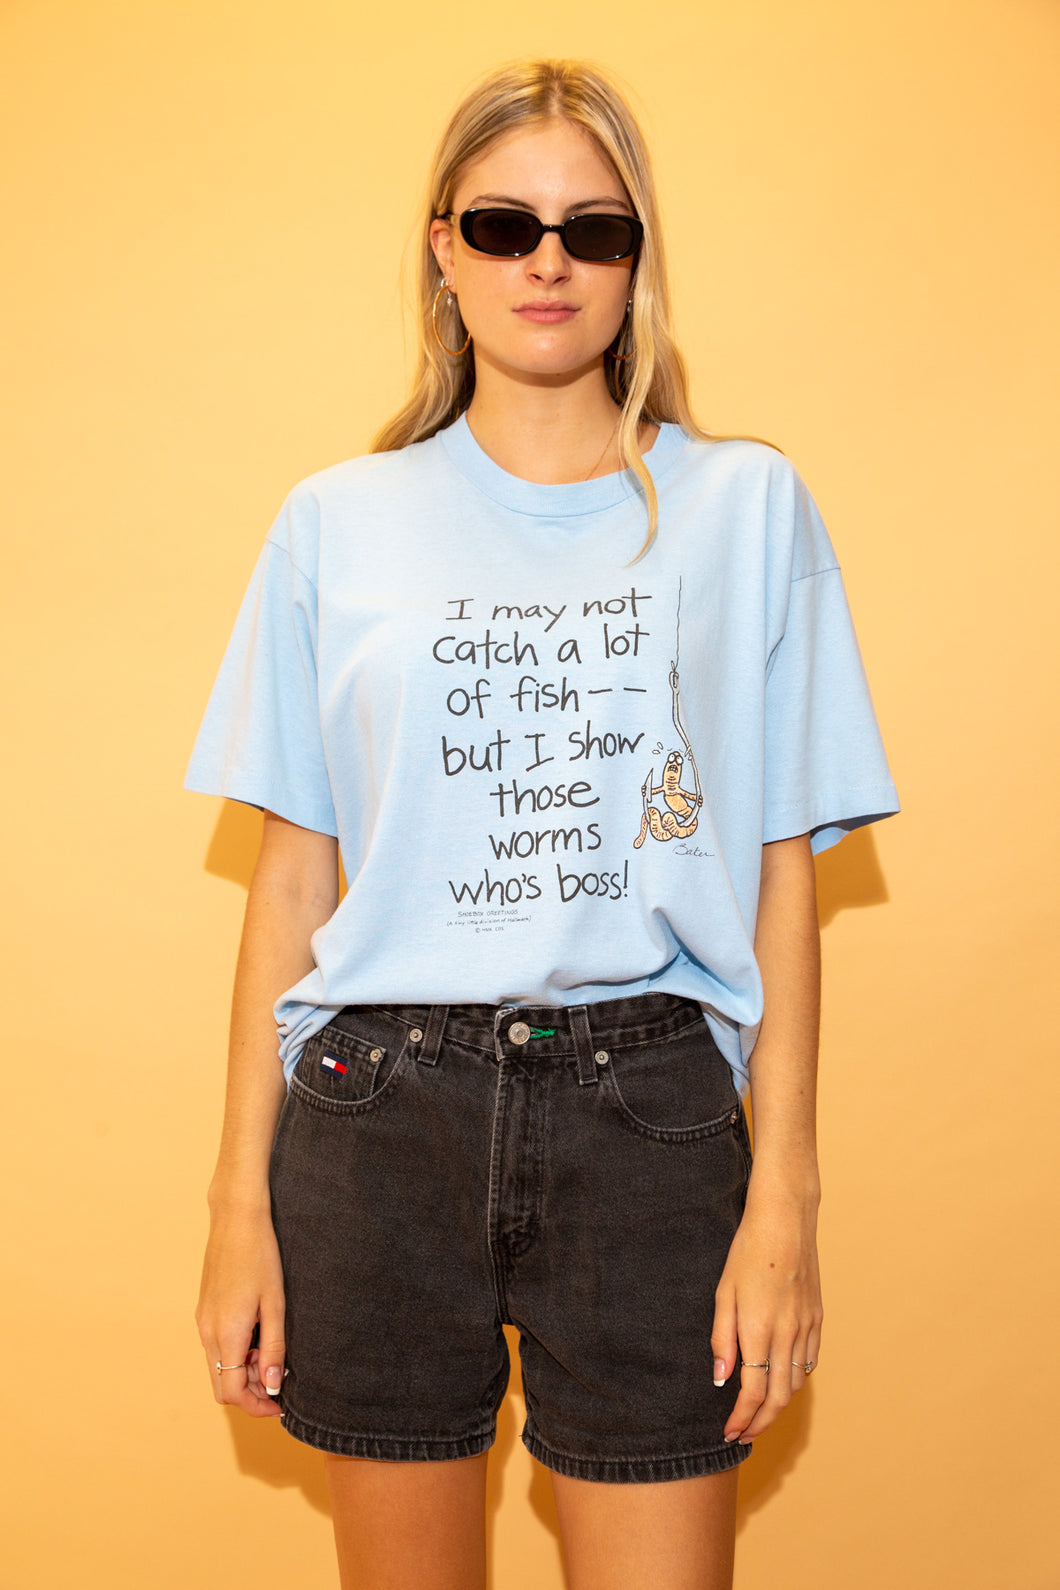 This single stitch tee is light blue with 'I may not catch a lot of fish - but I show those worms whose boss' printed in black across the front of the tee. Has a print of a scared worm on a hook.